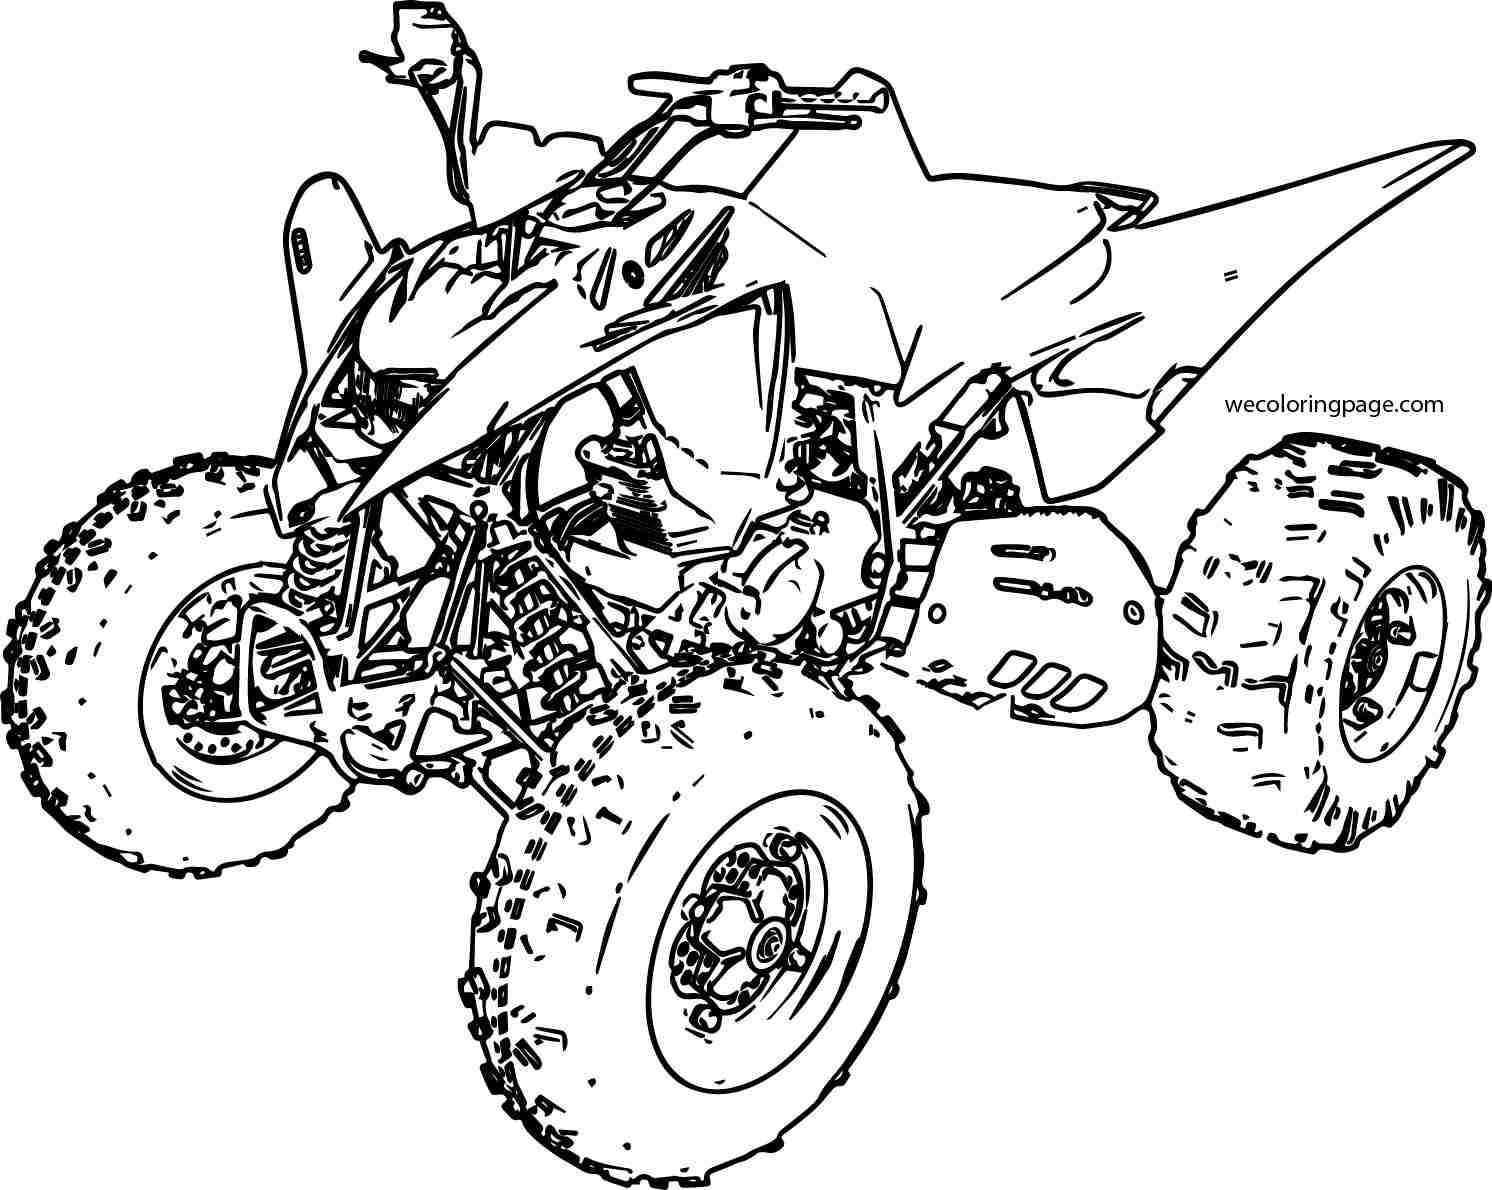 Grab Your New Coloring Pages Quad Free Https Gethighit Com New Coloring Pages Quad F Sports Coloring Pages Monster Truck Coloring Pages Bear Coloring Pages